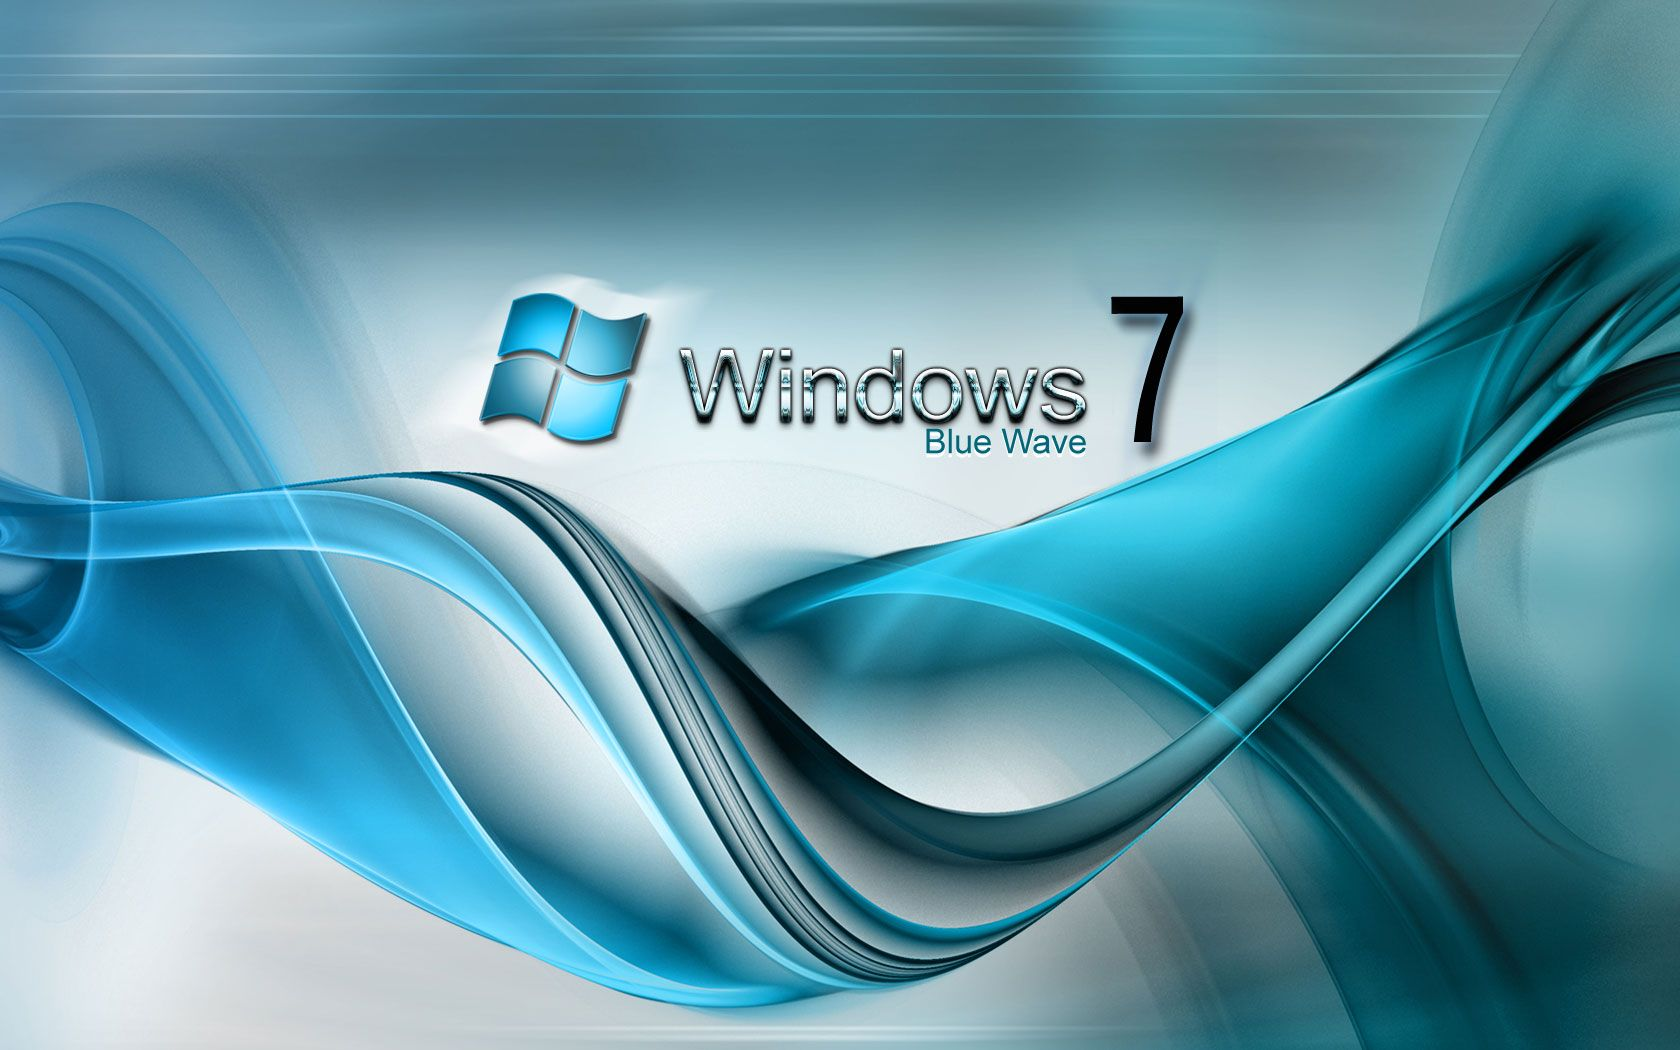 Windows 7 Wallpapers Hd Posted By Ryan Anderson